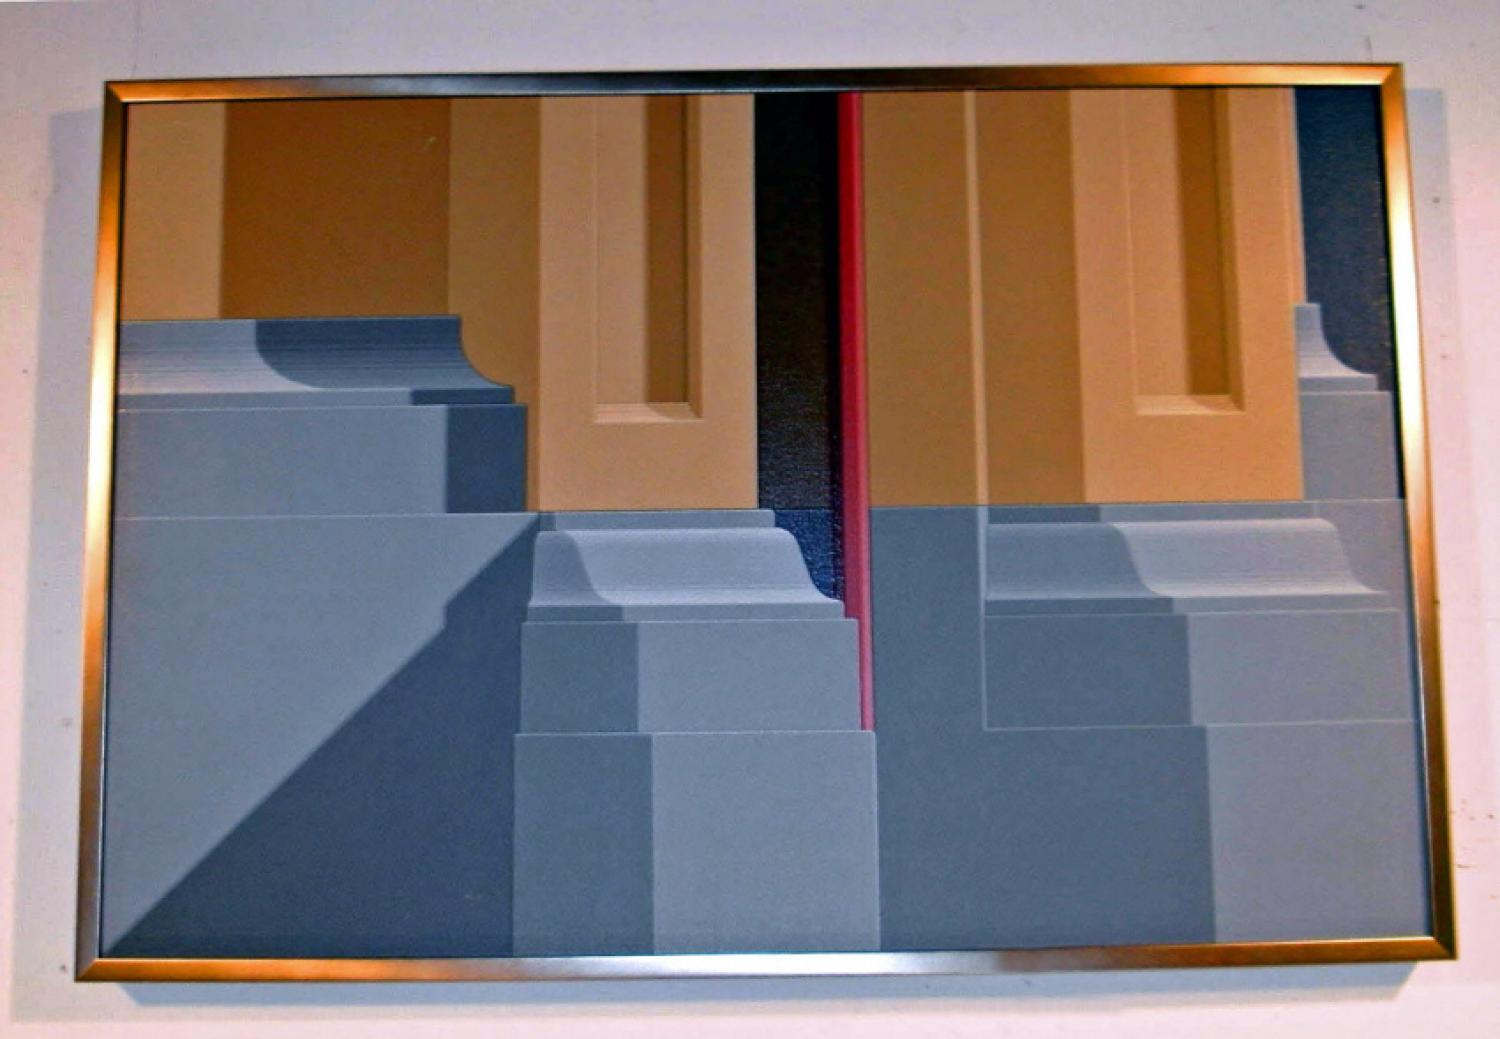 Hugh Kepets abstract architectural painting